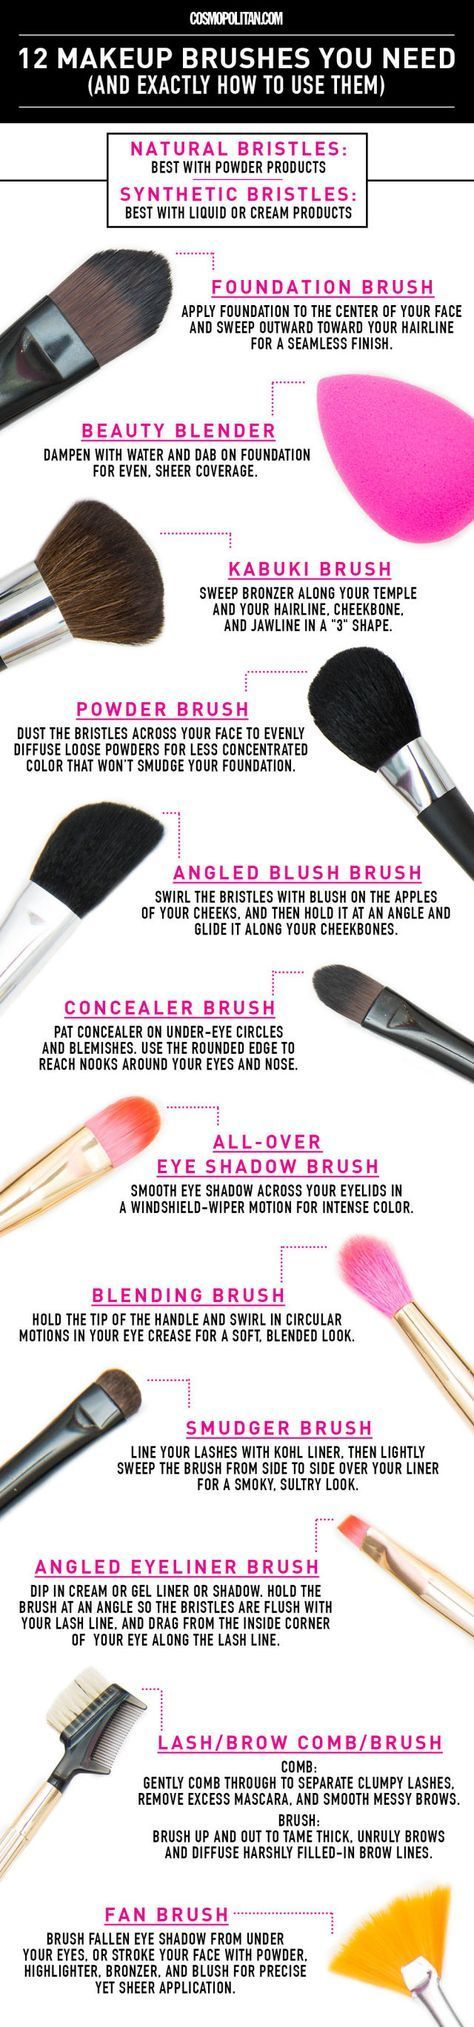 12 Makeup Brushes You Need and Exactly How to Use Them - They come in different shapes and sizes for a reason!. #cosmetics #makeup #beauty #shoptagr: